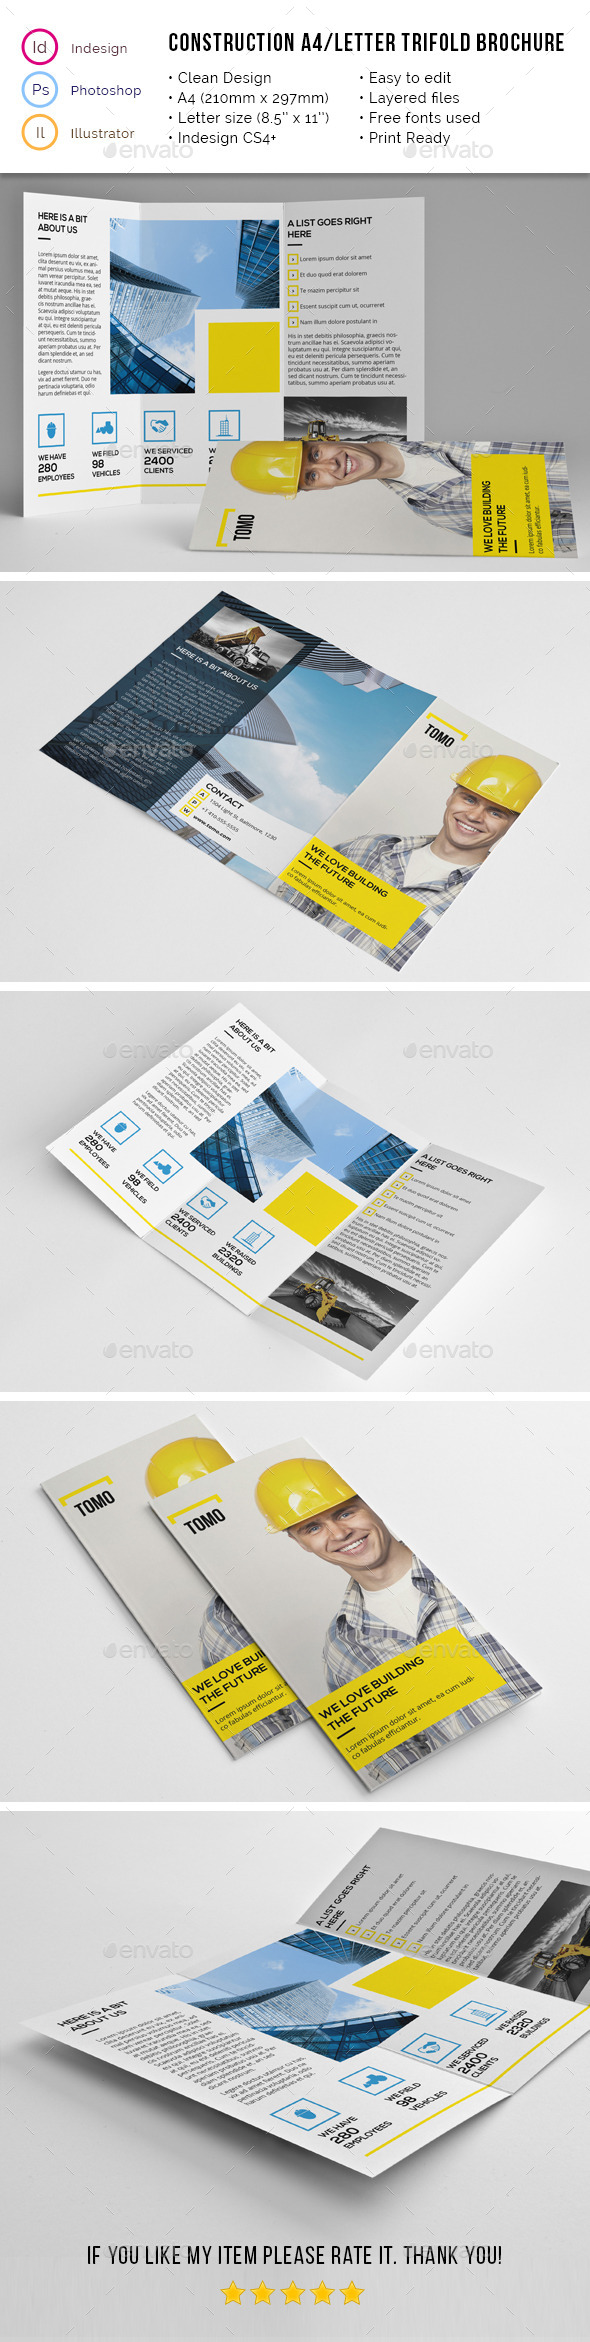 GraphicRiver Construction Company A4 Letter Trifold 02 11789636